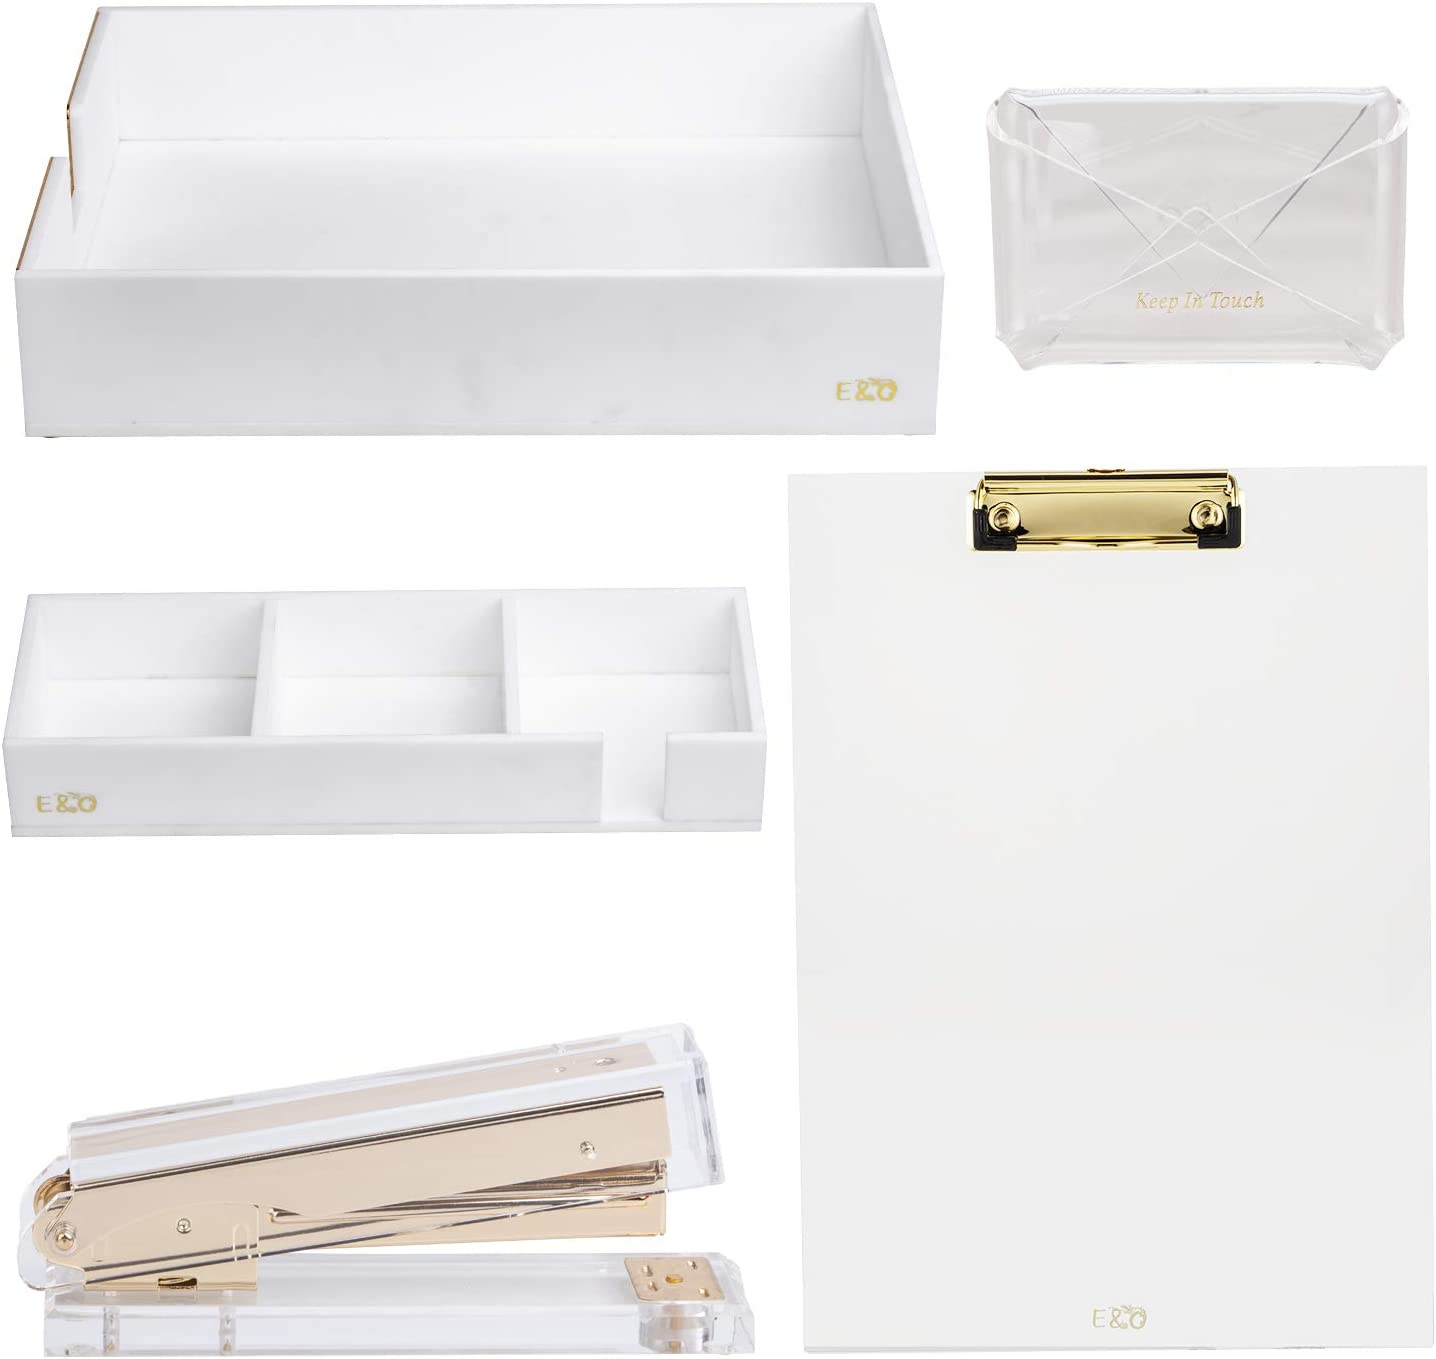 E&O 5 Pcs Set Clear Acrylic Stapler,Name Card Holder,Clipboard,Letter Tray, Notes Holder Office and Stationery Accessory